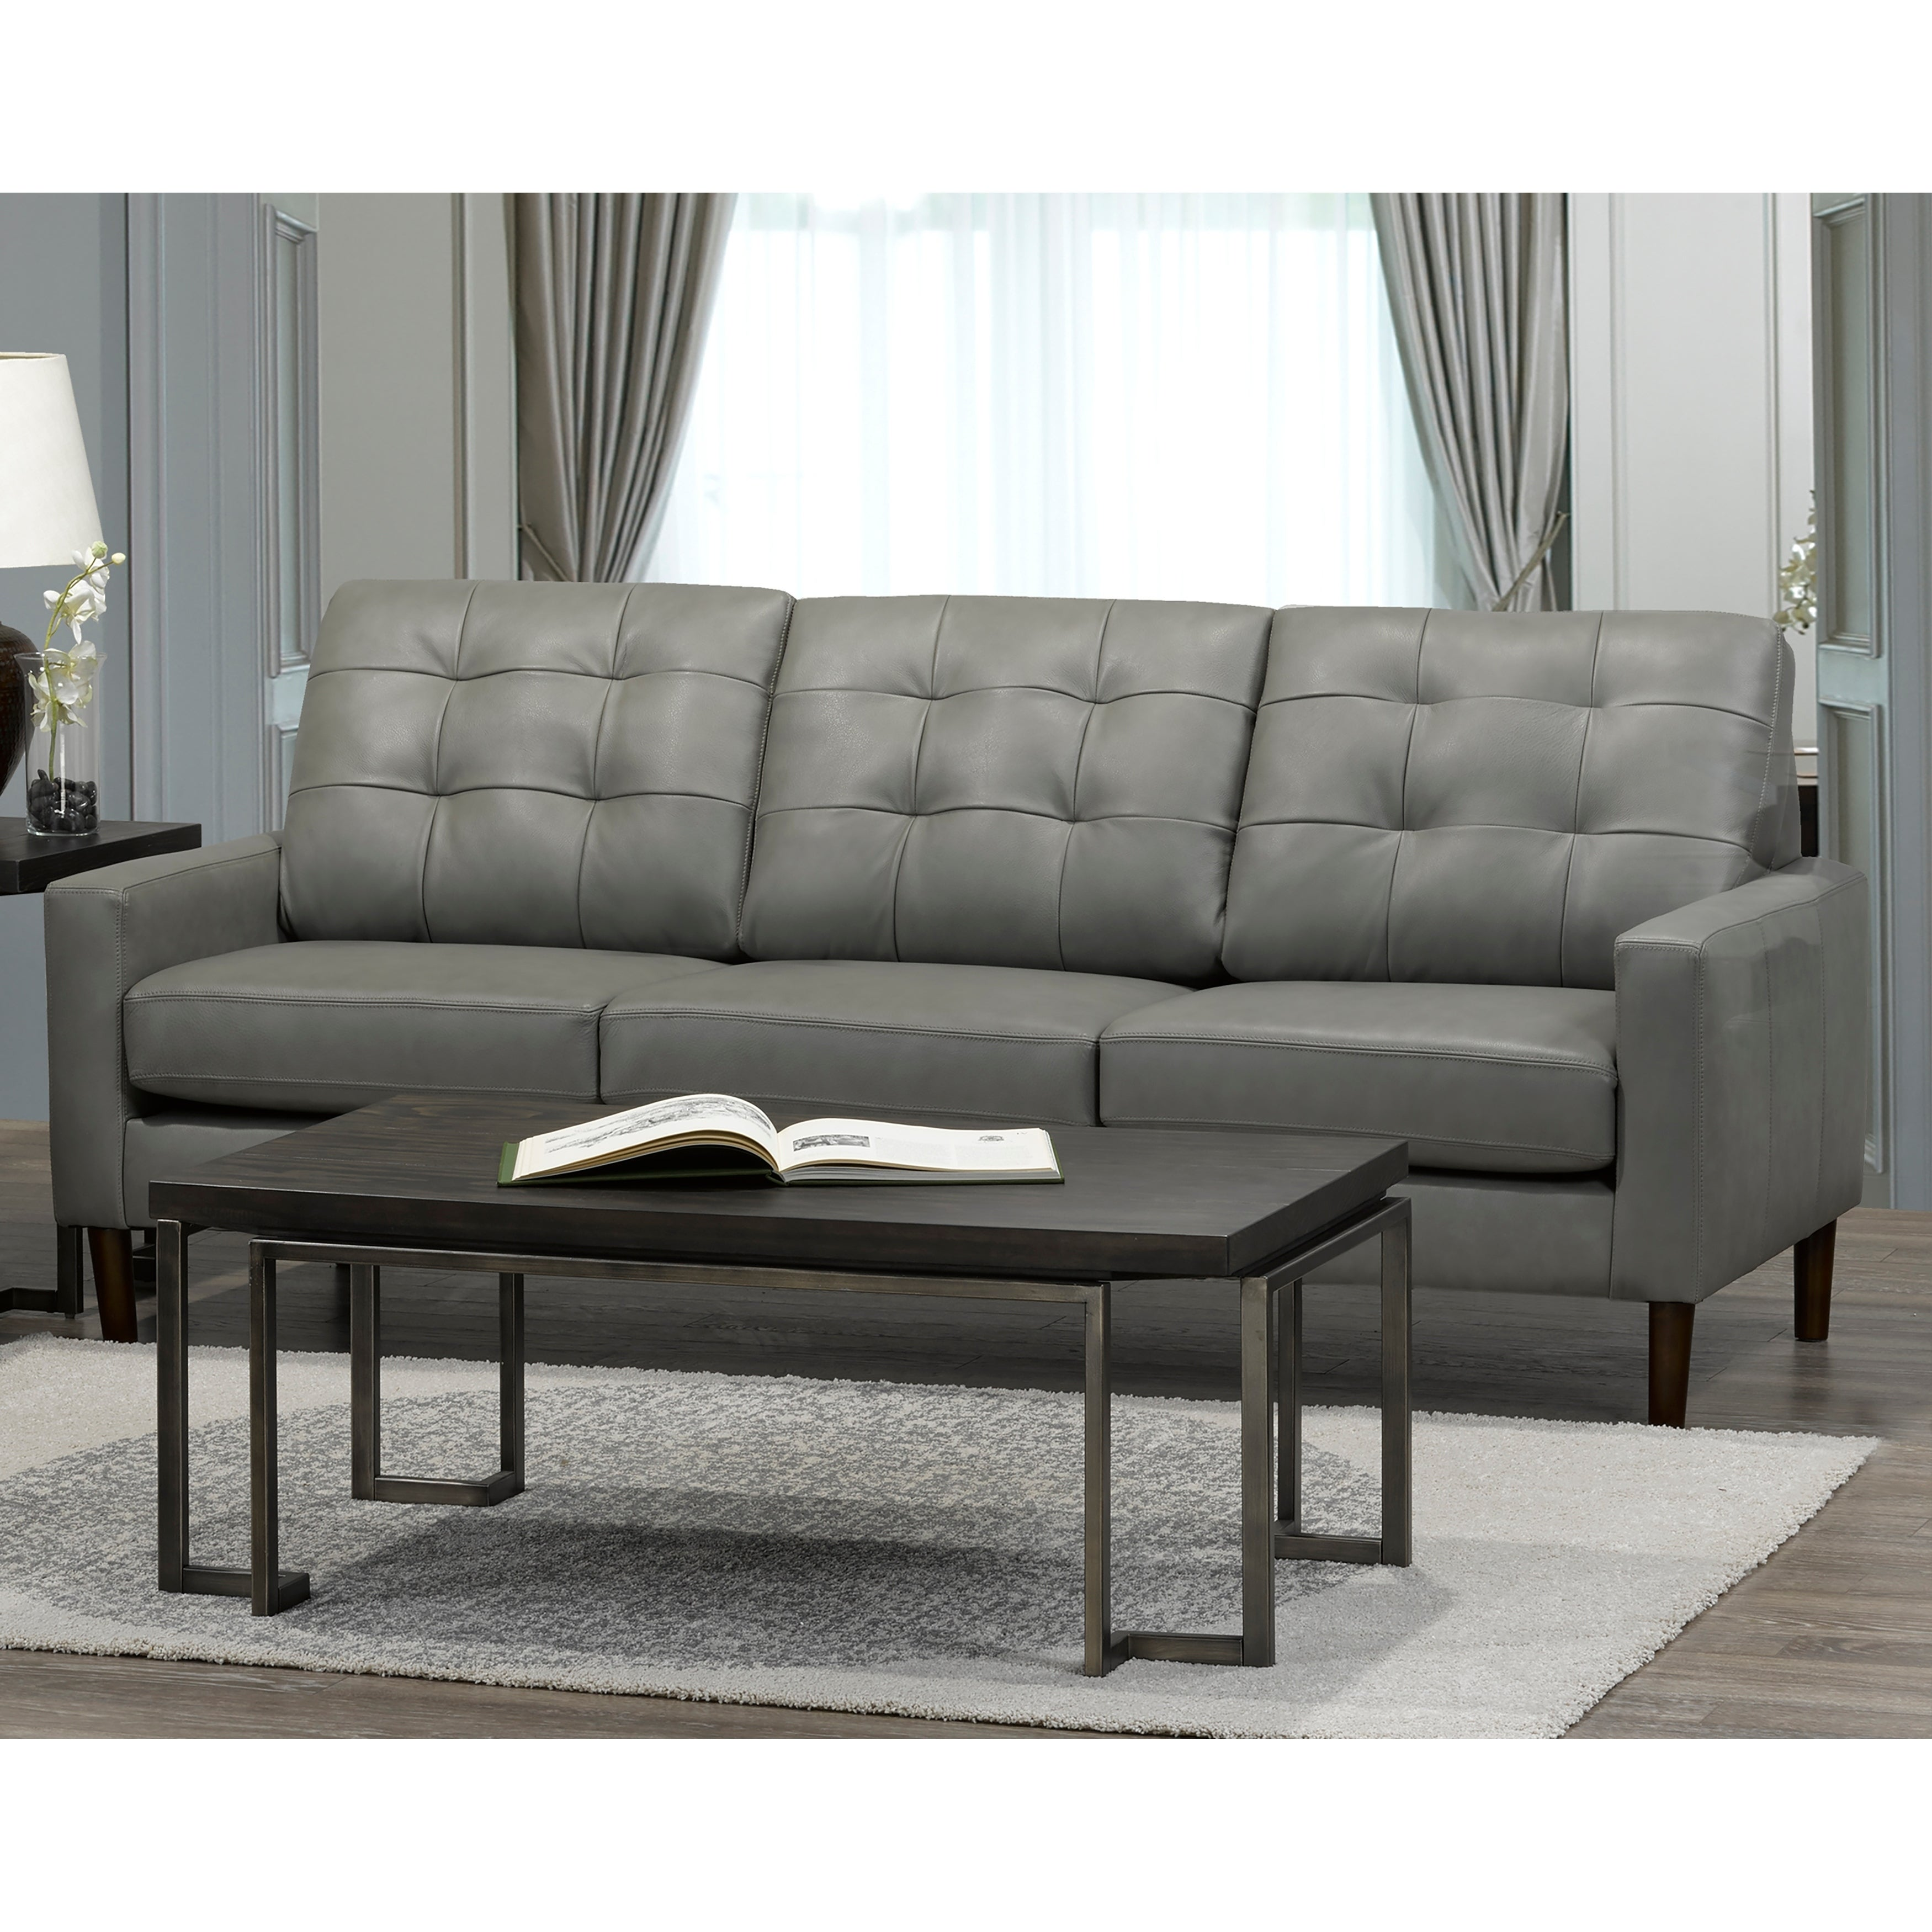 Shop colt mid century modern grey top grain italian leather tufted sofa on sale free shipping today overstock 20847586